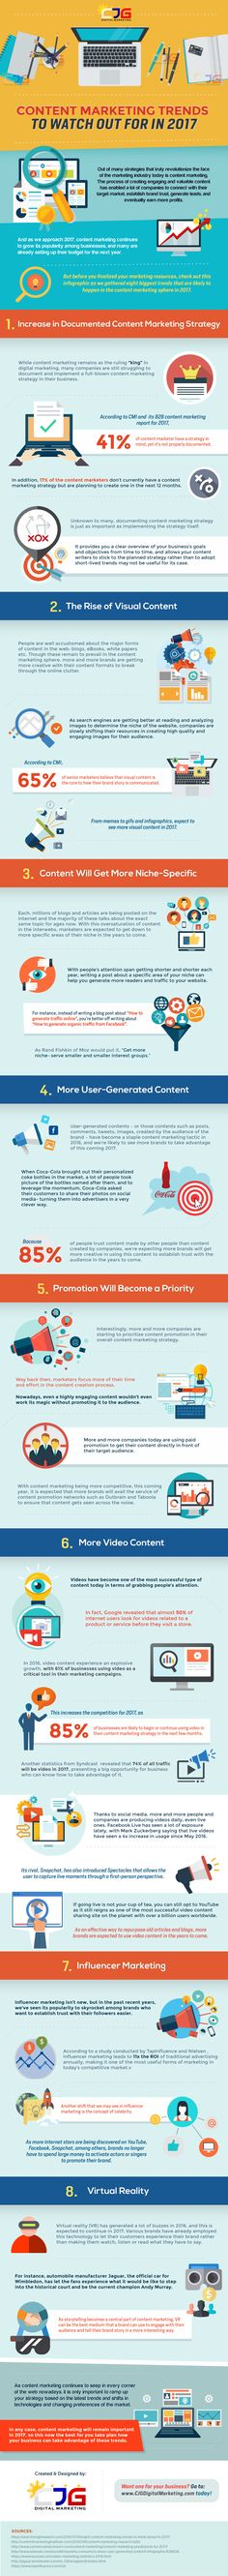 8 Content Marketing Trends To Watch Out in 2017 (infographic)